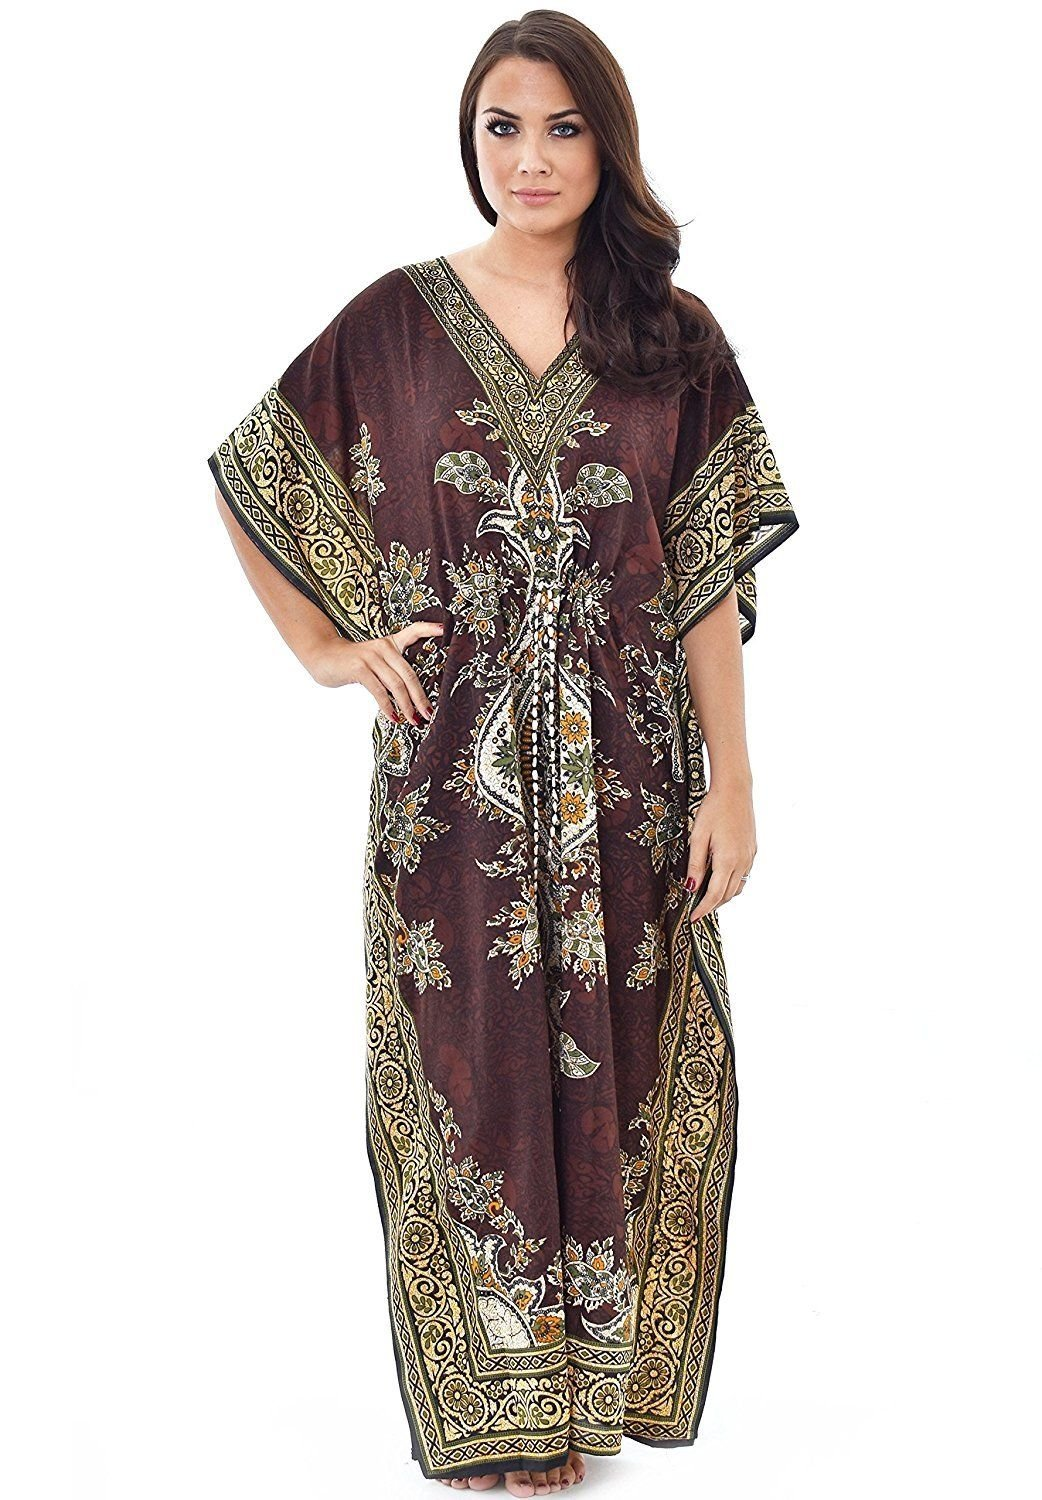 Winmaarc 100% Polyester Tribal Ethnic Print Long Kaftan Maxi | Plus Size by Winmaarc (Image #1)